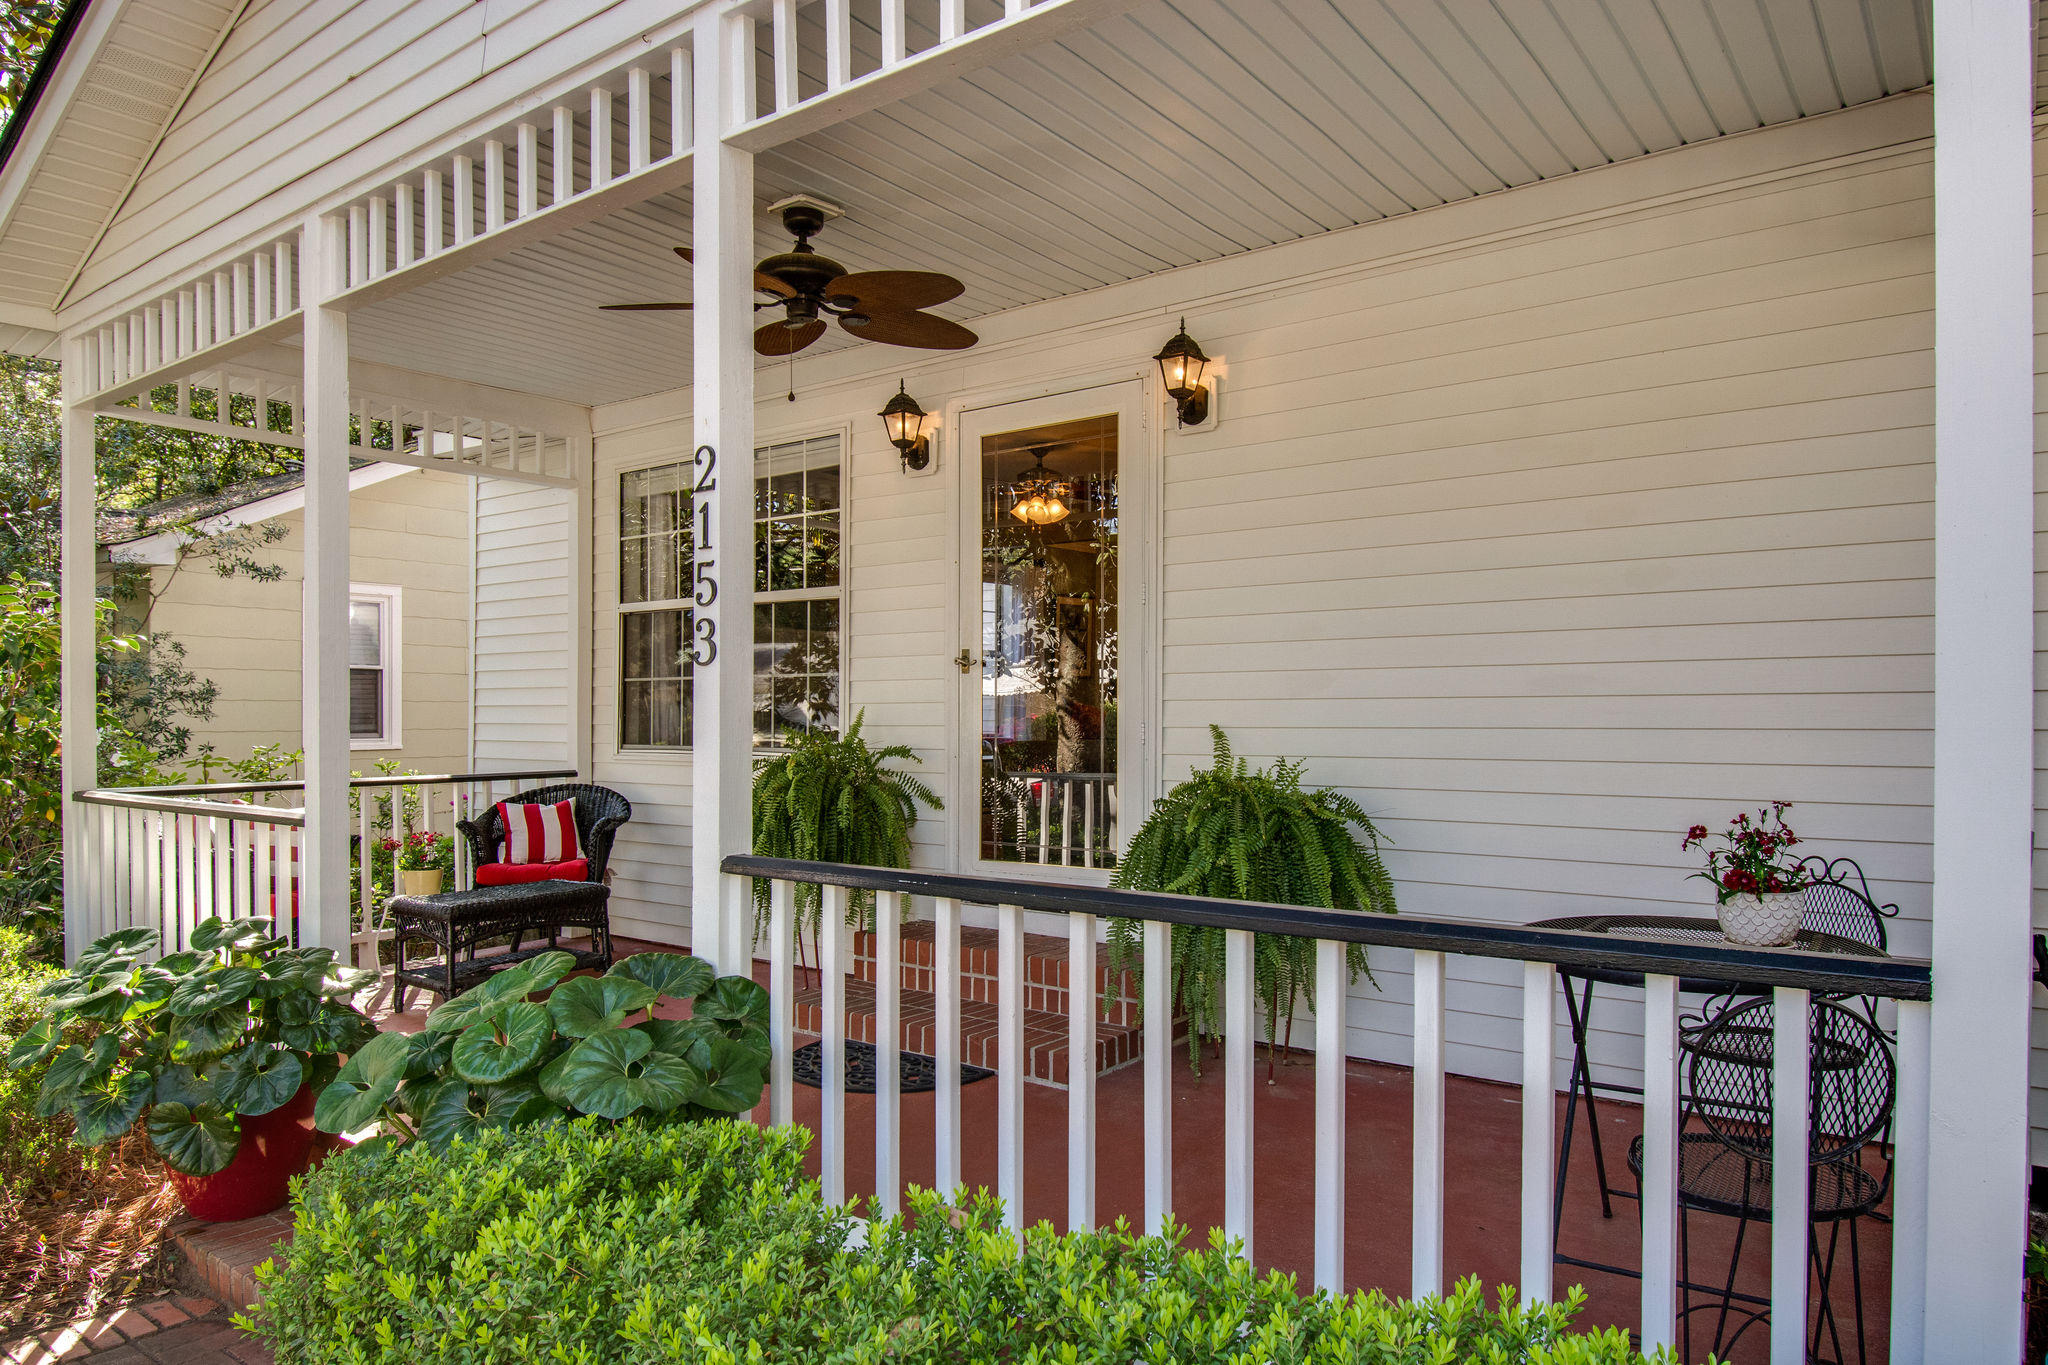 Riverland Terrace Homes For Sale - 2153 Welch, Charleston, SC - 34